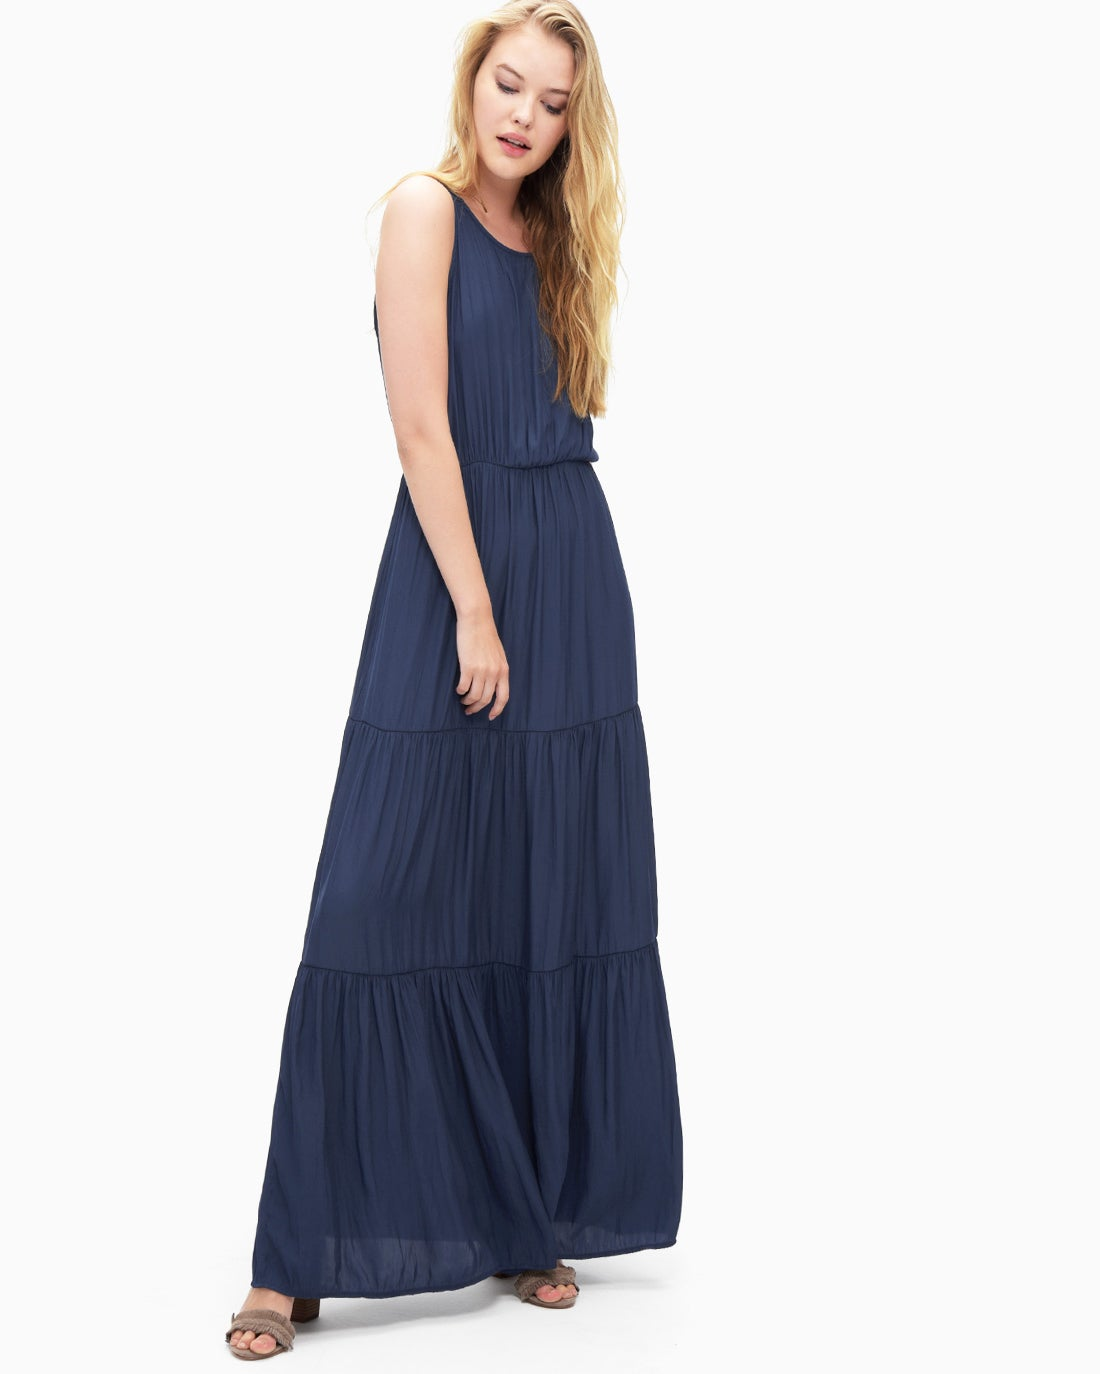 Splendid Women's Tiered Maxi Dress